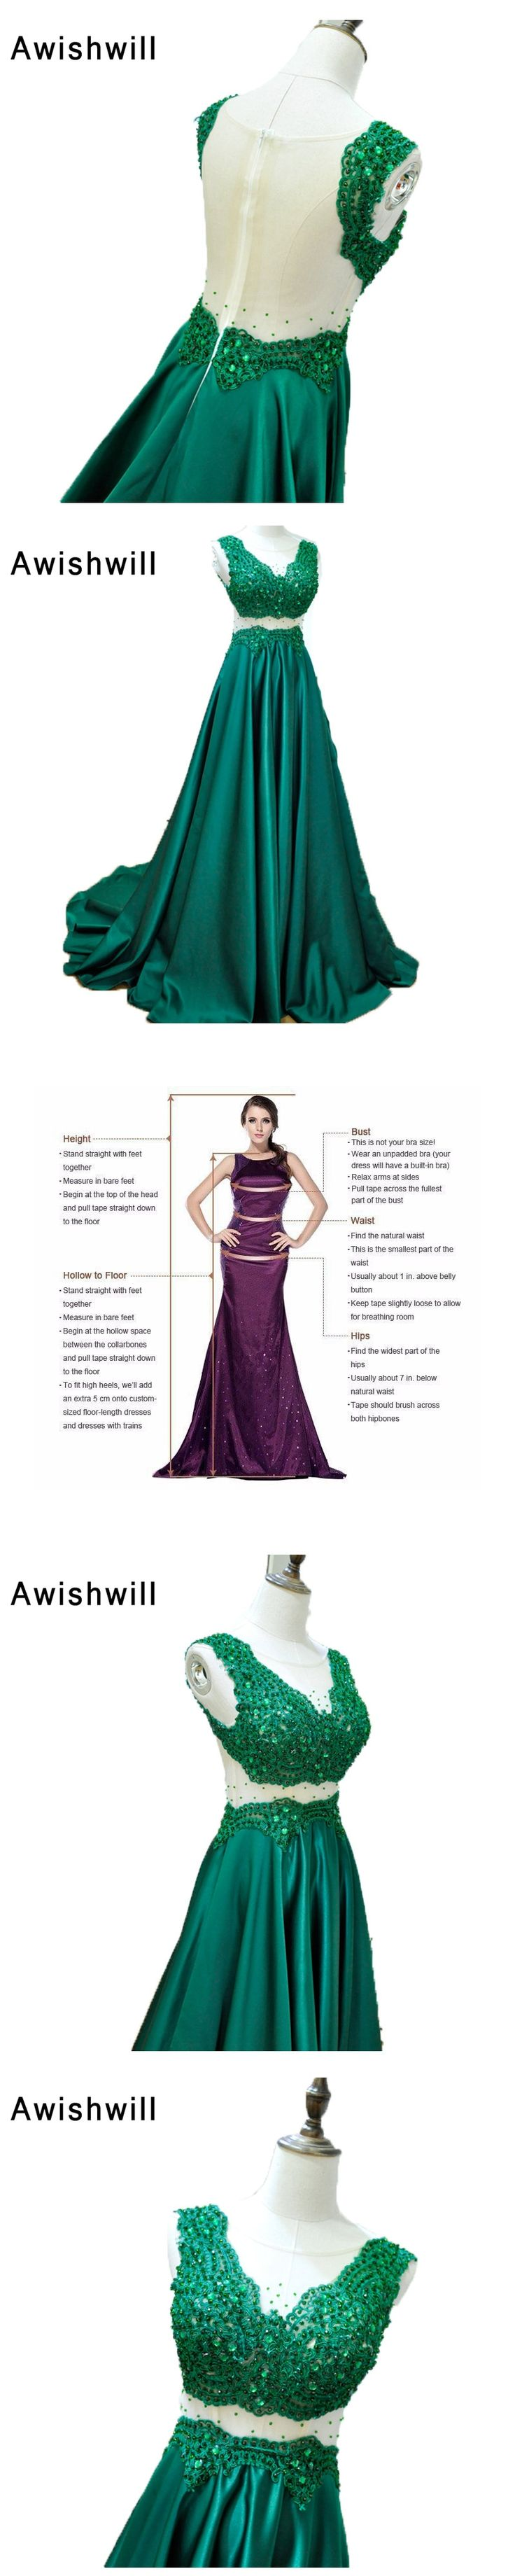 Emerlad Green Evening Dress for Women Sexy Transparent Back Appliques Beading Satin Long Prom Gown Custom Party Formal Dresses